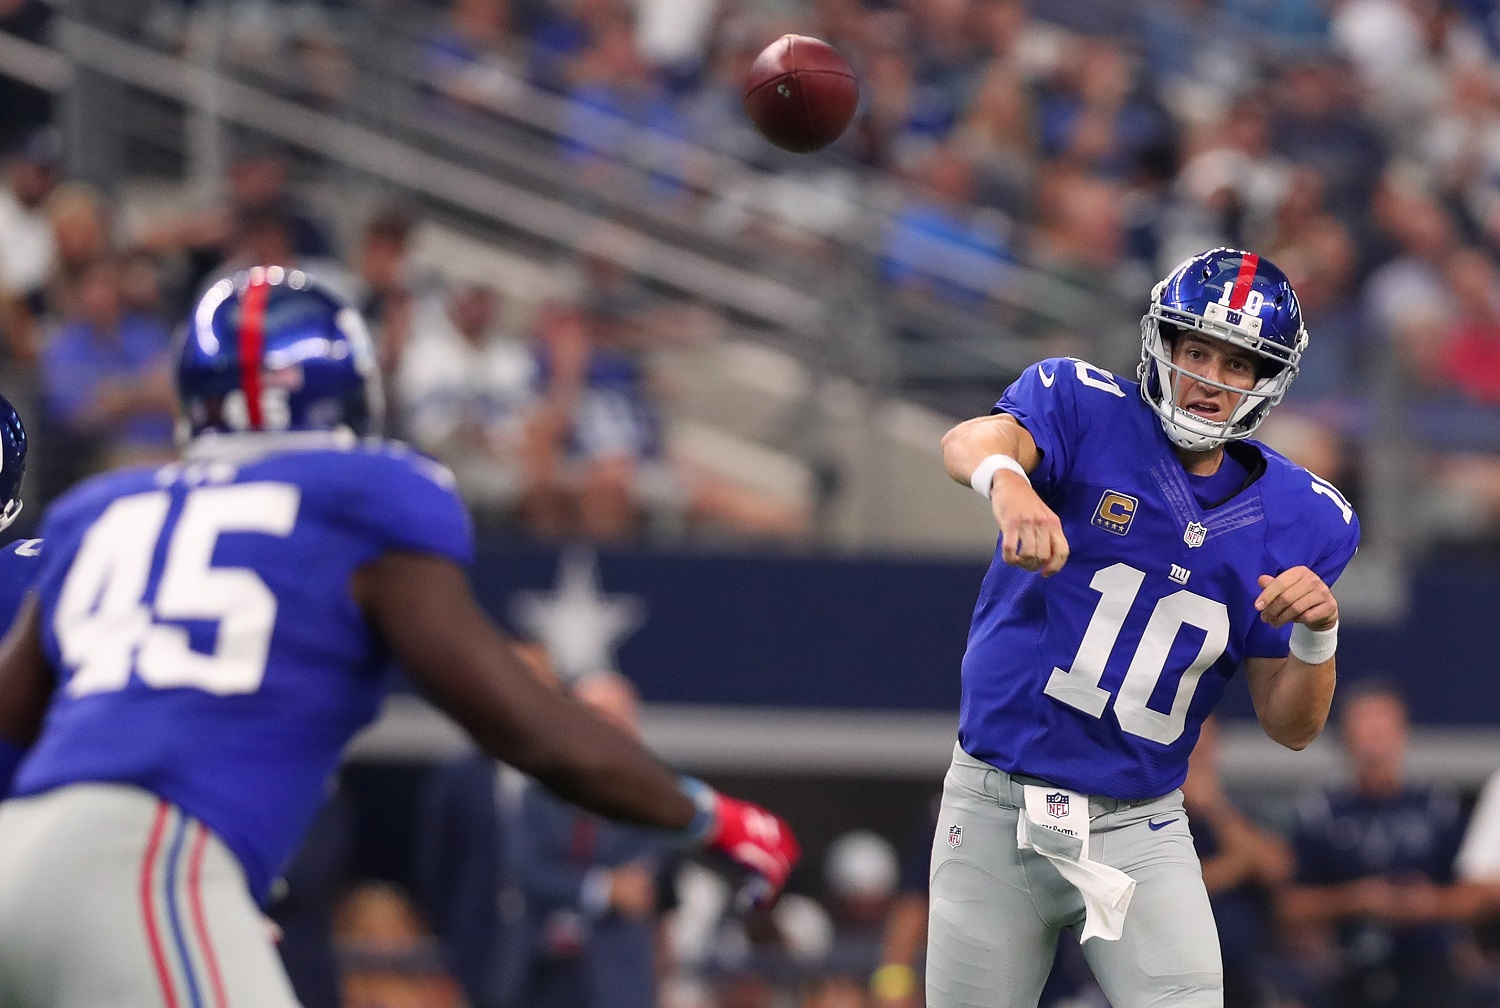 ARLINGTON, TX - SEPTEMBER 11:  Eli Manning #10 of the New York Giants throws a pass during the second half against the Dallas Cowboys at AT&T Stadium on September 11, 2016 in Arlington, Texas.  (Photo by Tom Pennington/Getty Images)